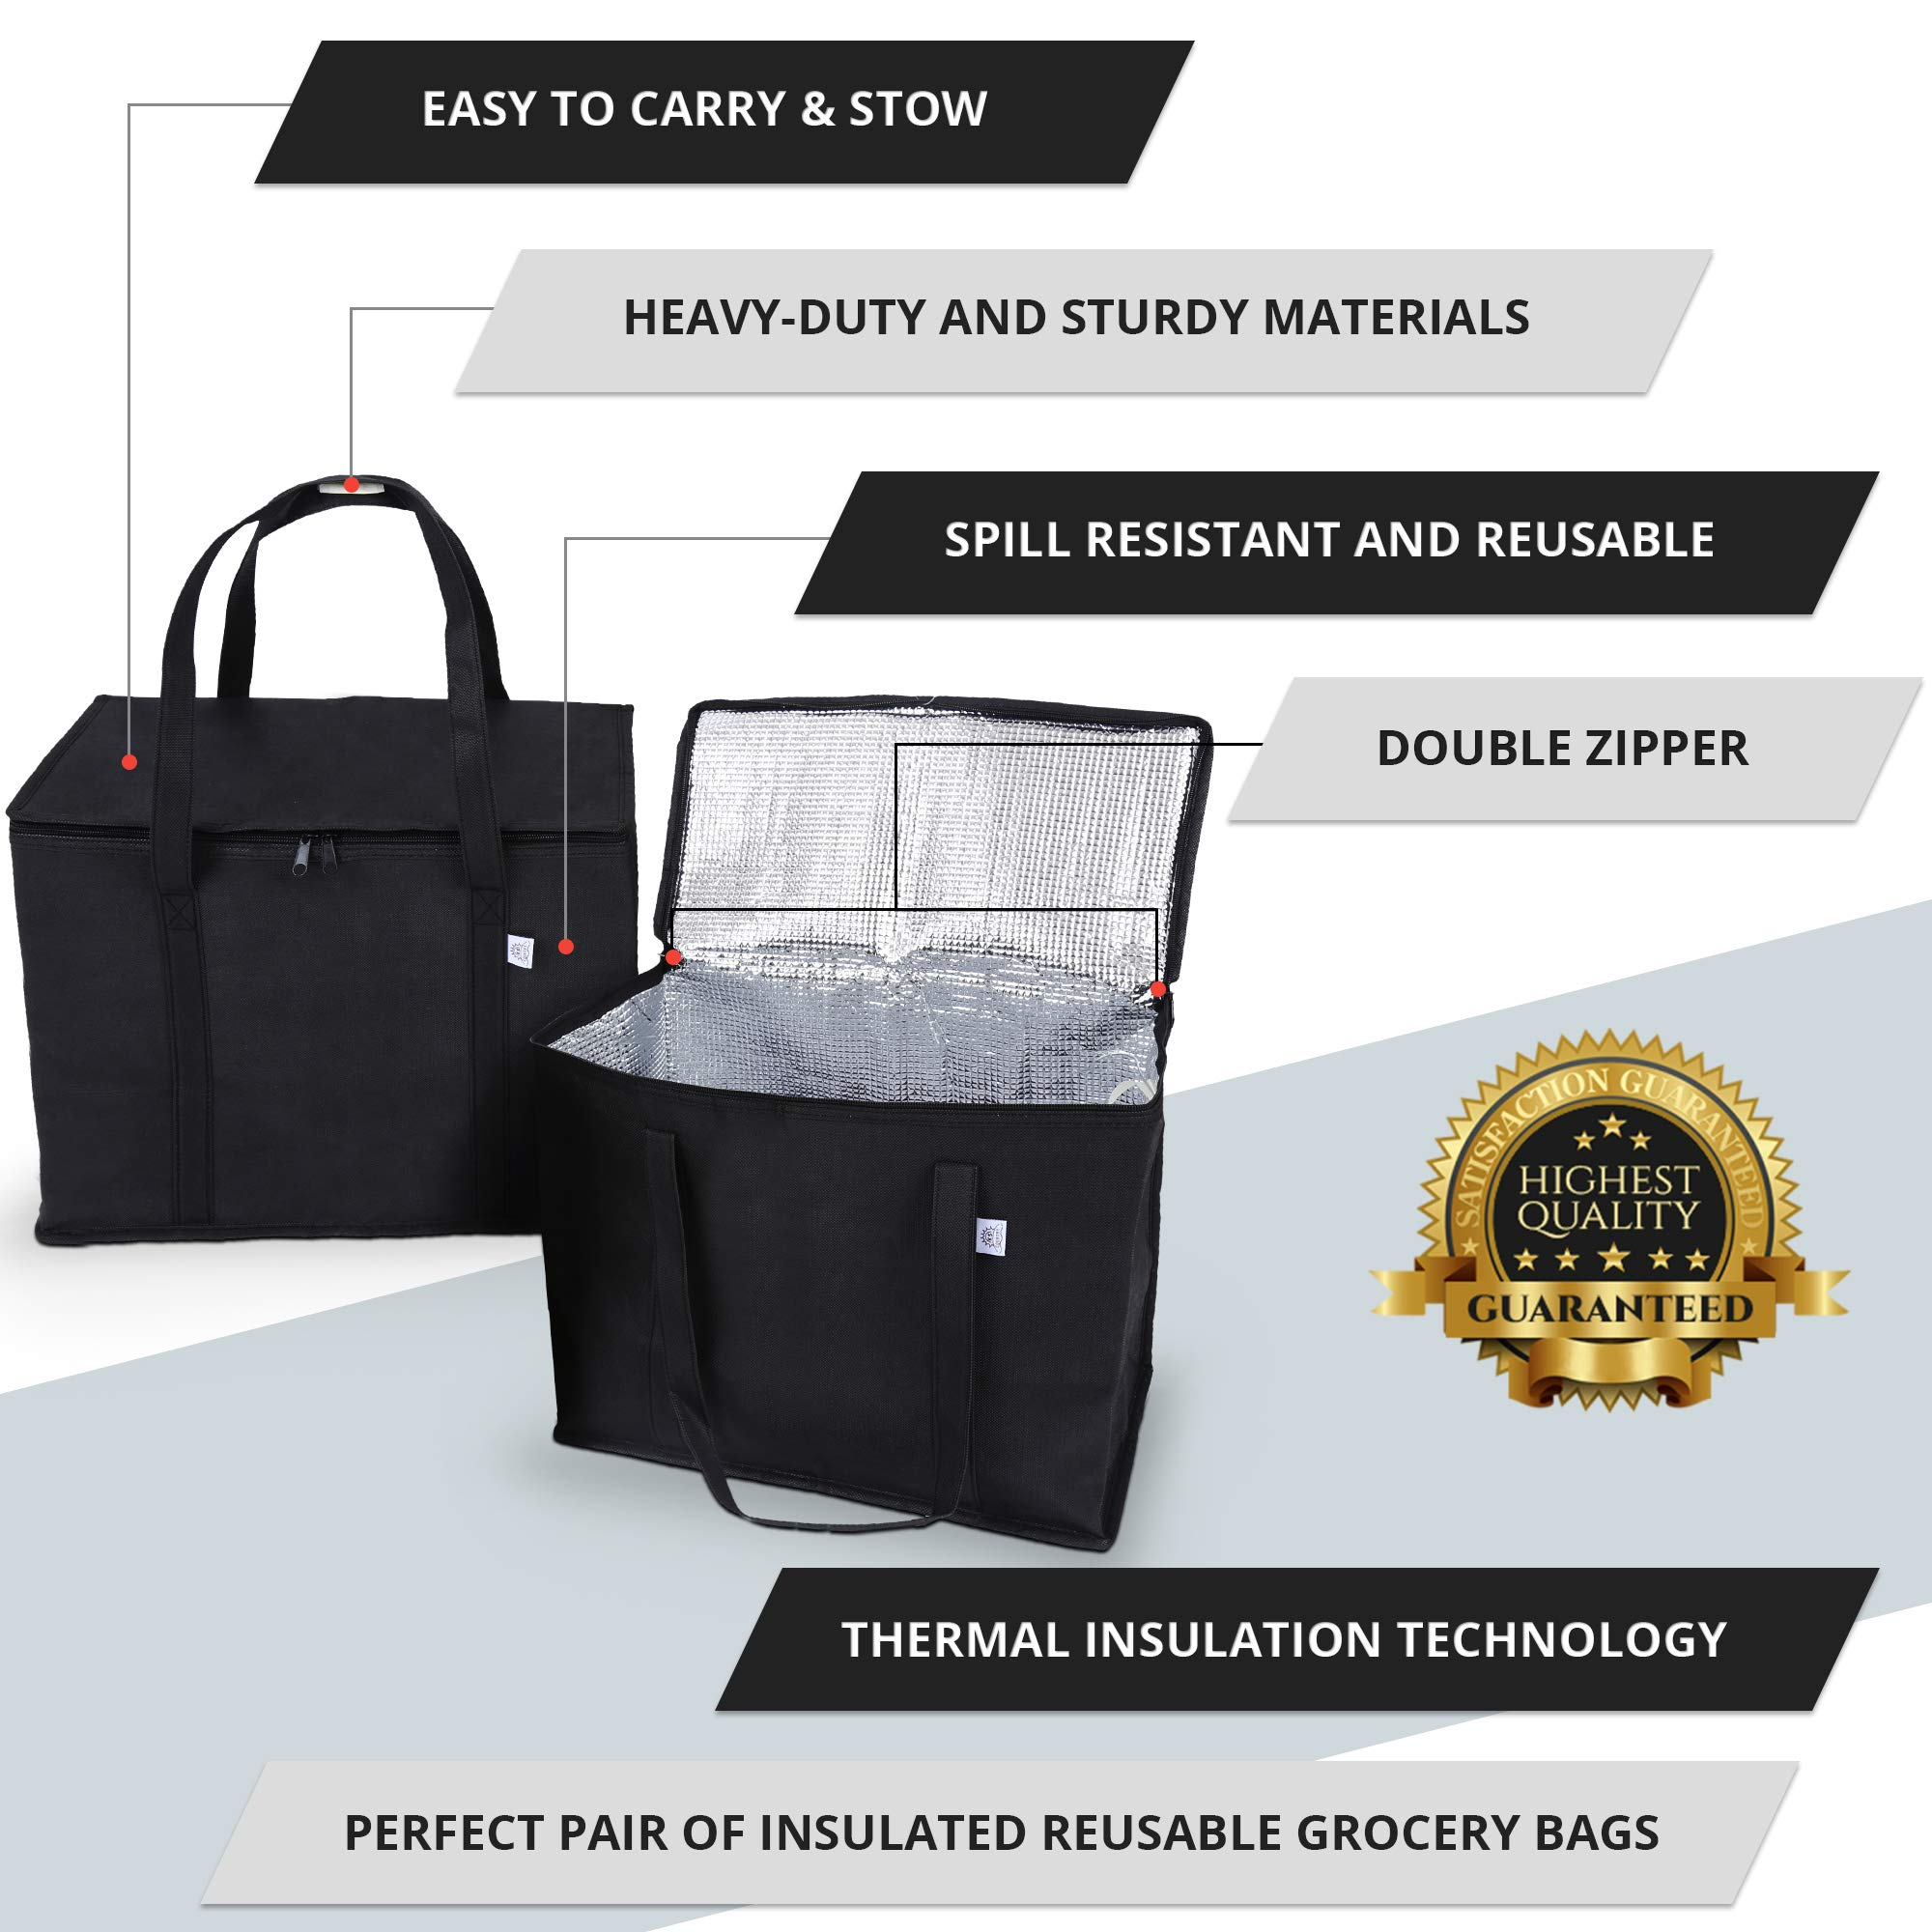 2 Pack Reusable Grocery Tote Bag by Ks Country - Collapsible and Stands Upright with Durable Zippers and Large Reinforced Handles for Extra Strength - Sturdy and Insulated to Keep Foods Cold or Hot by Ks Country (Image #6)